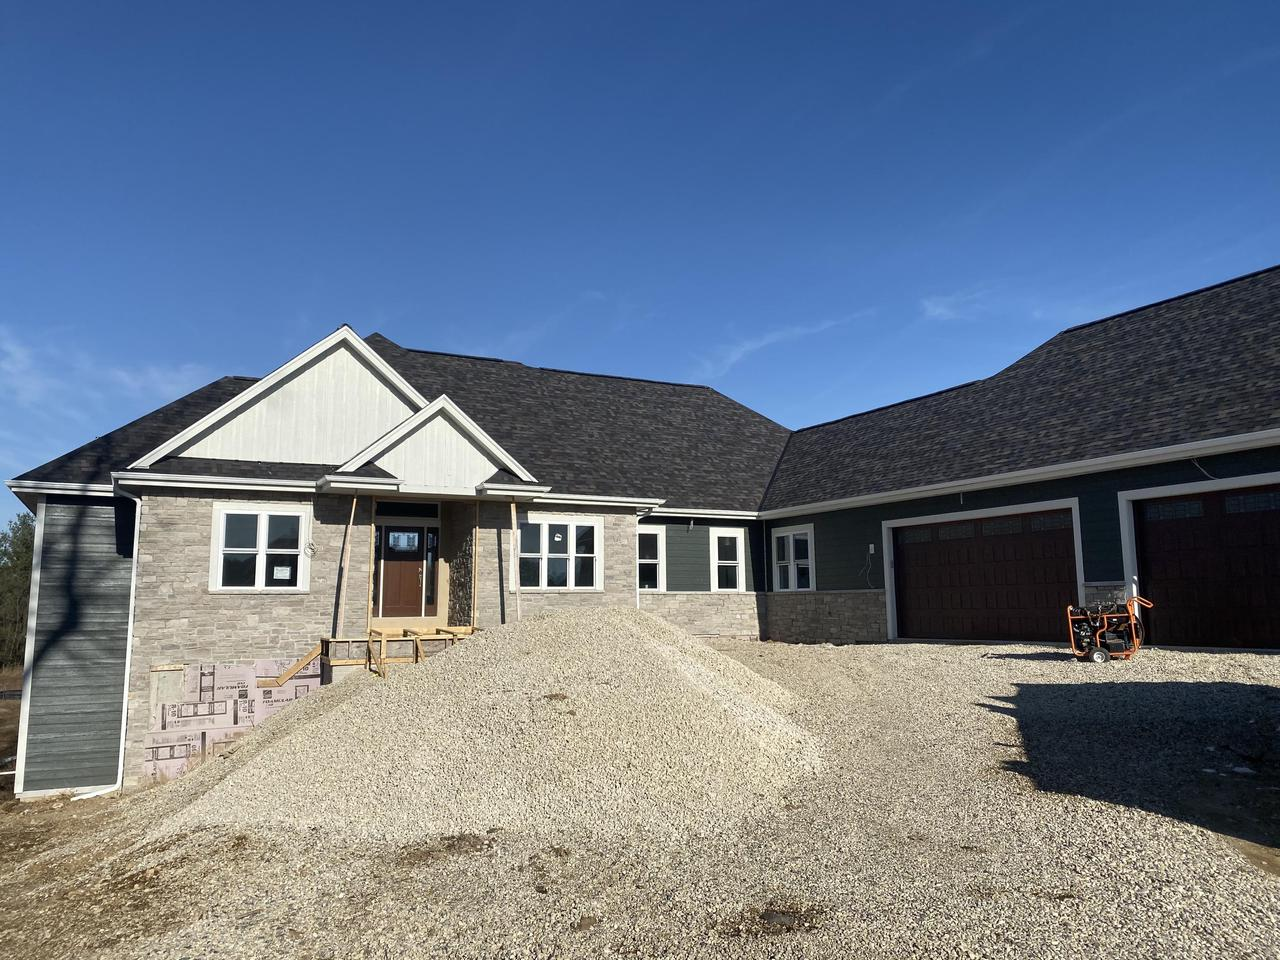 Brand NEW, custom built split ranch home in the Whispering Heights Subdivision. Sitting on 1.25 acres of land. Open concept, solid white oak flooring, large living room with gas fireplace, Jack and Jill bath with ceramic tile flooring. Master bedroom suite with large walk-in closet, nearly all marble master bathroom with walk-in shower and separate tub and quartz countertops. Spacious, walkout basement stubbed for a full bathroom awaiting your finishing touches! All of this is completed by a 3 car attached garage, a bonus room, mud room and laundry room all on the main level.